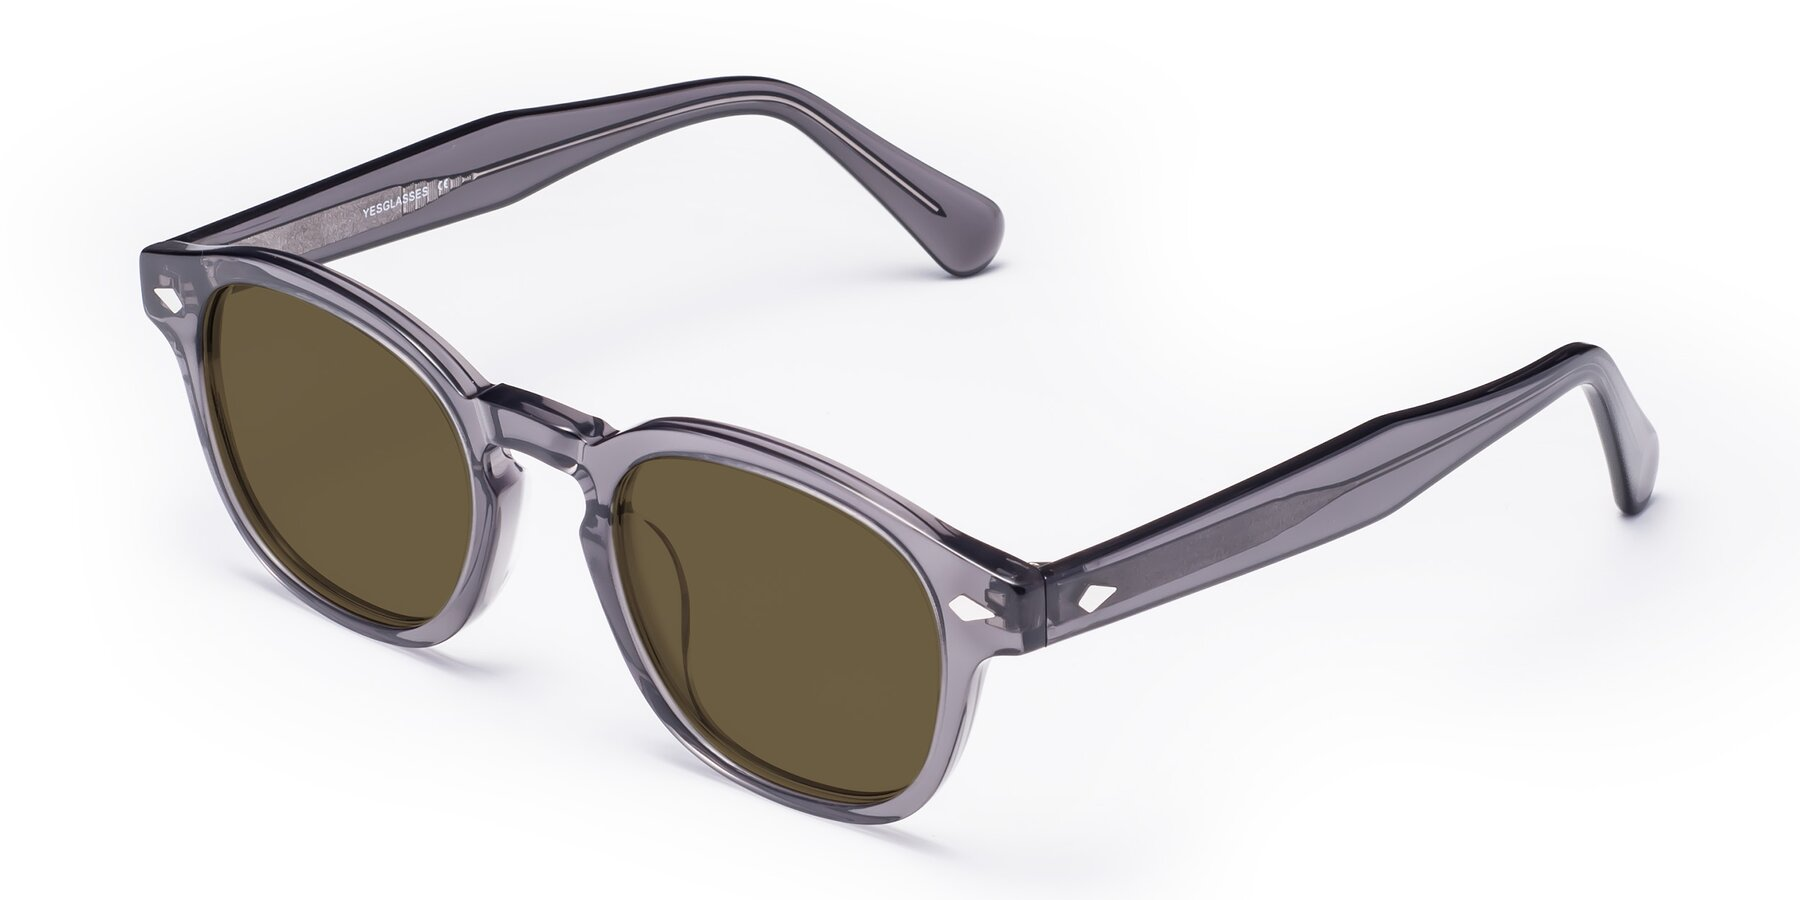 Angle of WALL-E in Translucent Gray with Brown Polarized Lenses